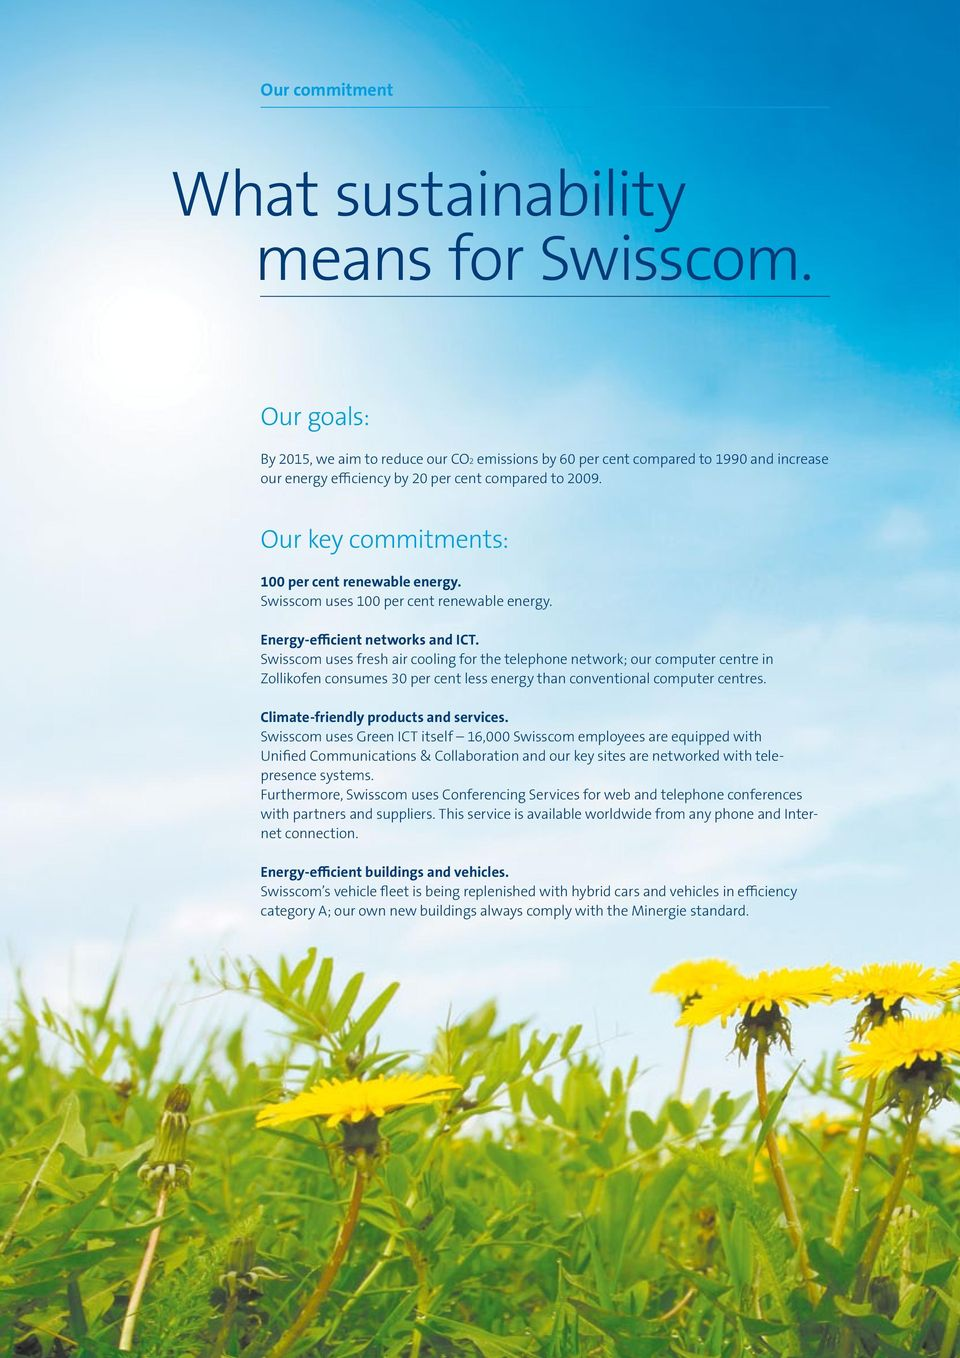 Our key commitments: 100 per cent renewable energy. Swisscom uses 100 per cent renewable energy. Energy-efficient networks and ICT.